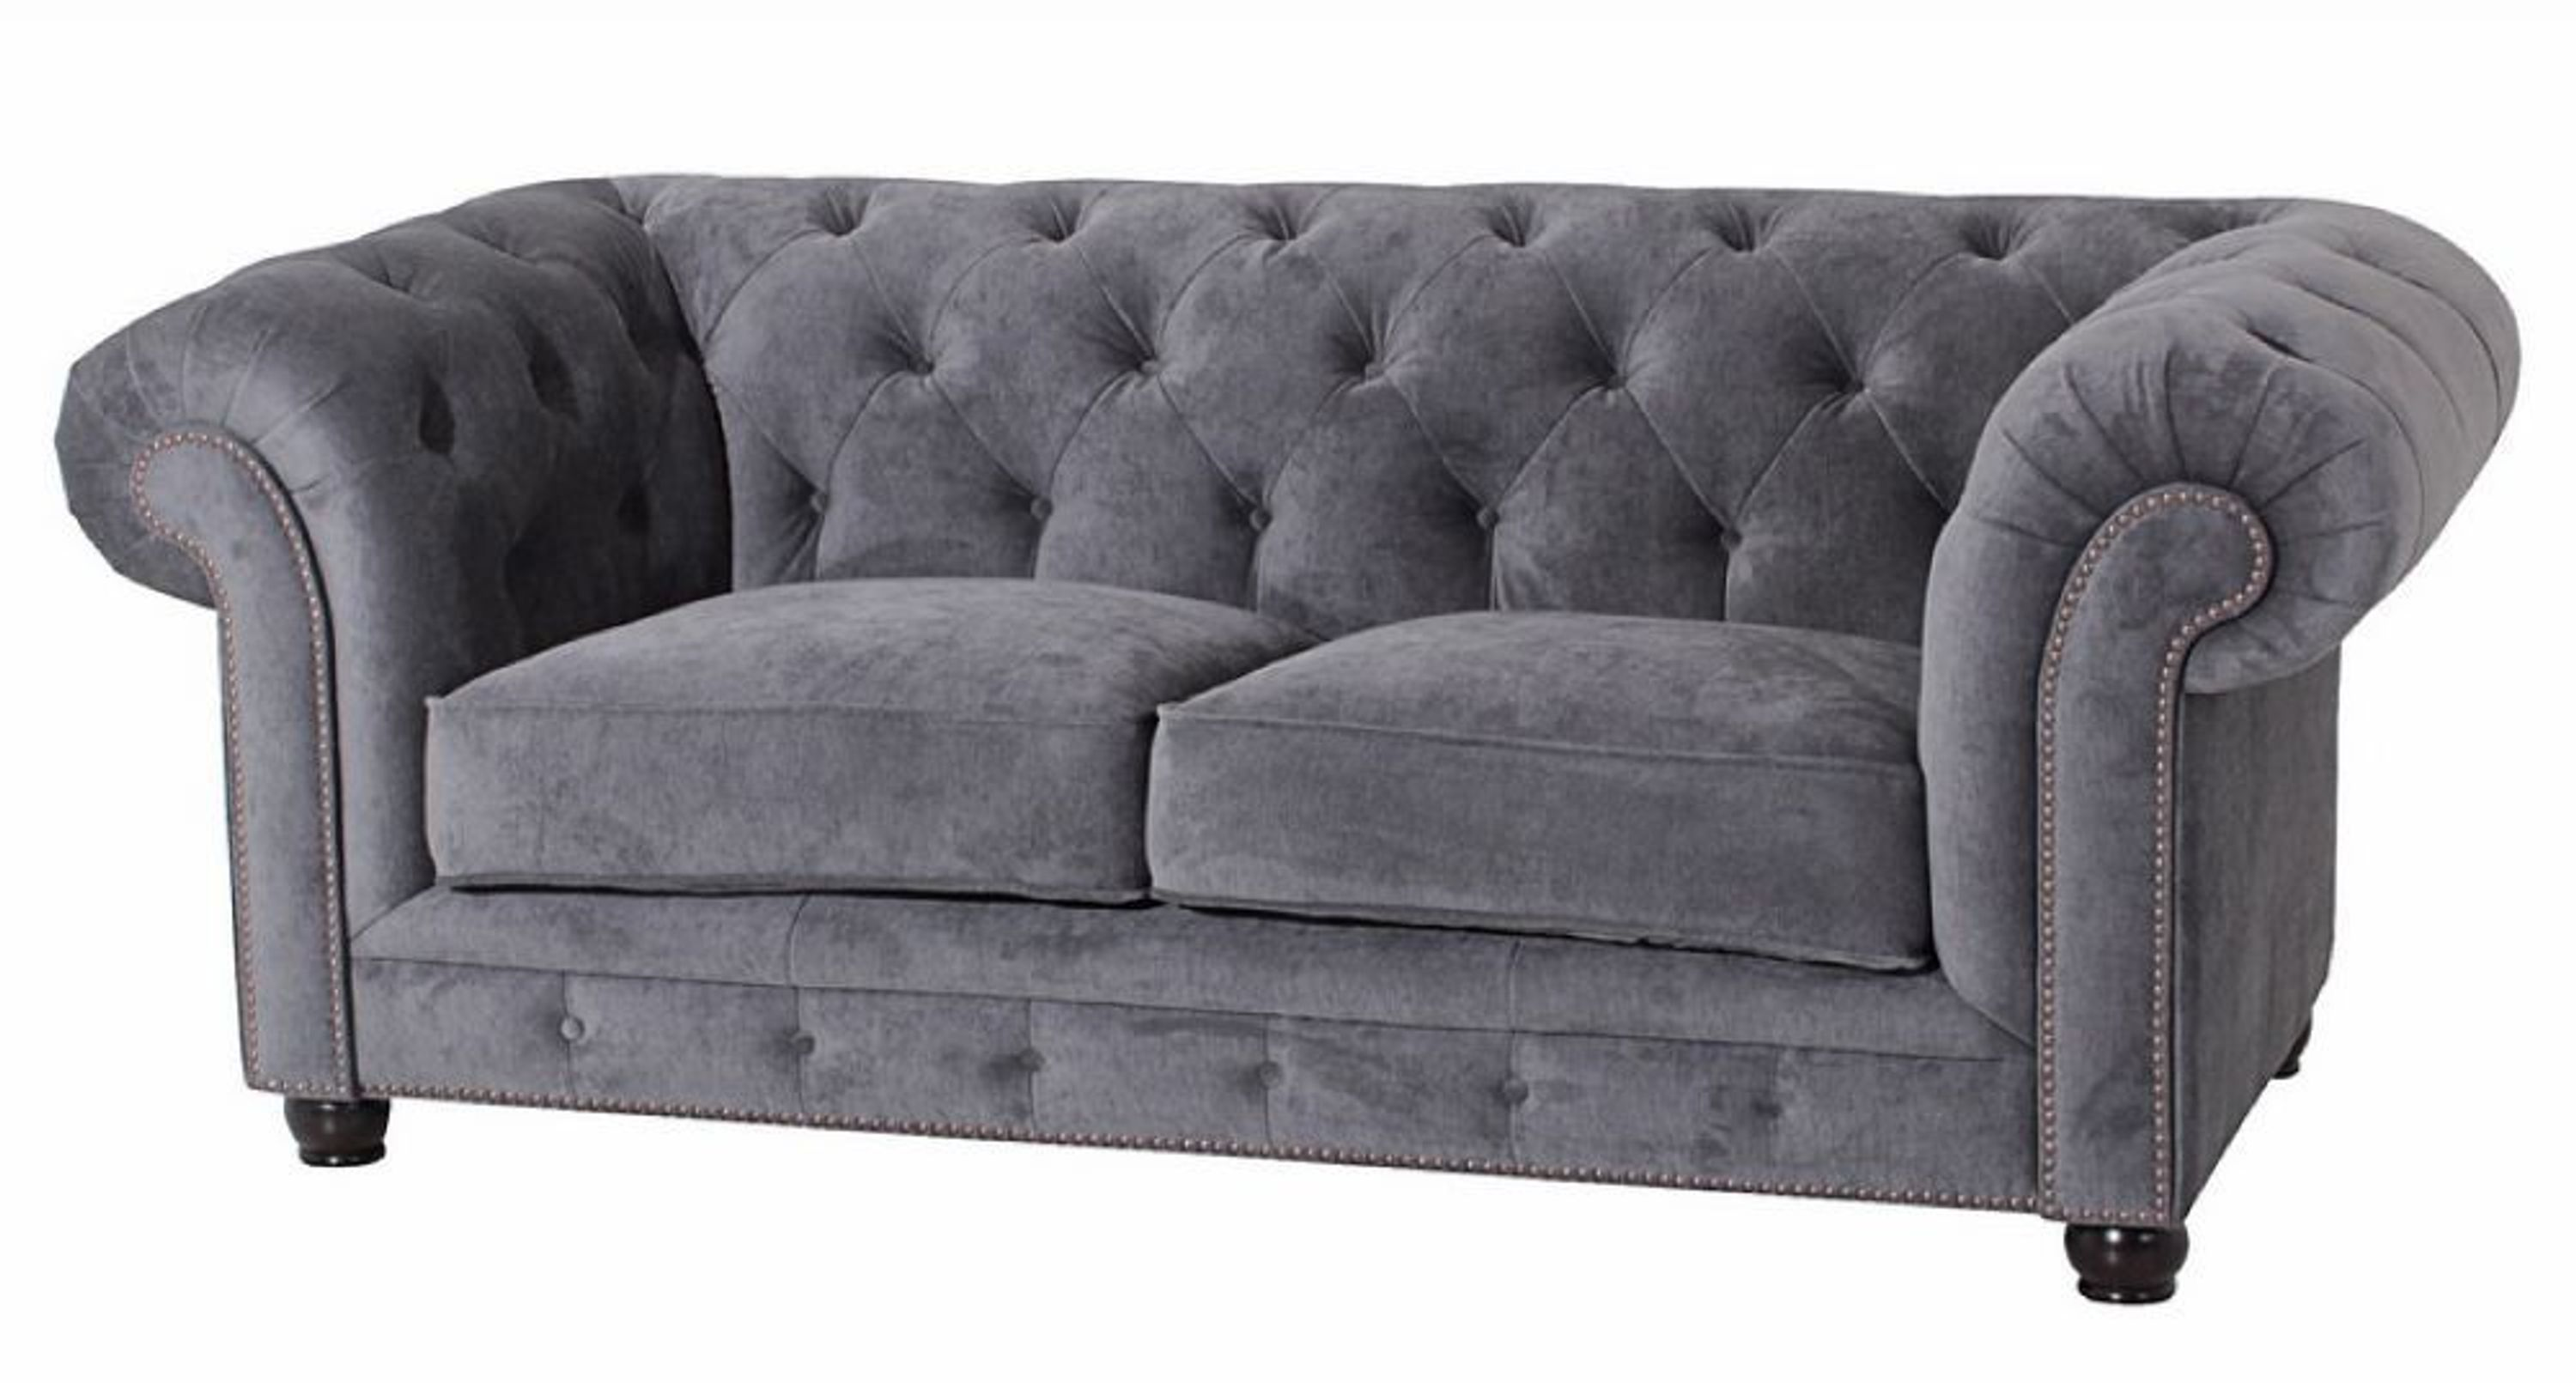 sofa 2 sitz orleans samtvelours grau kaufen bei. Black Bedroom Furniture Sets. Home Design Ideas